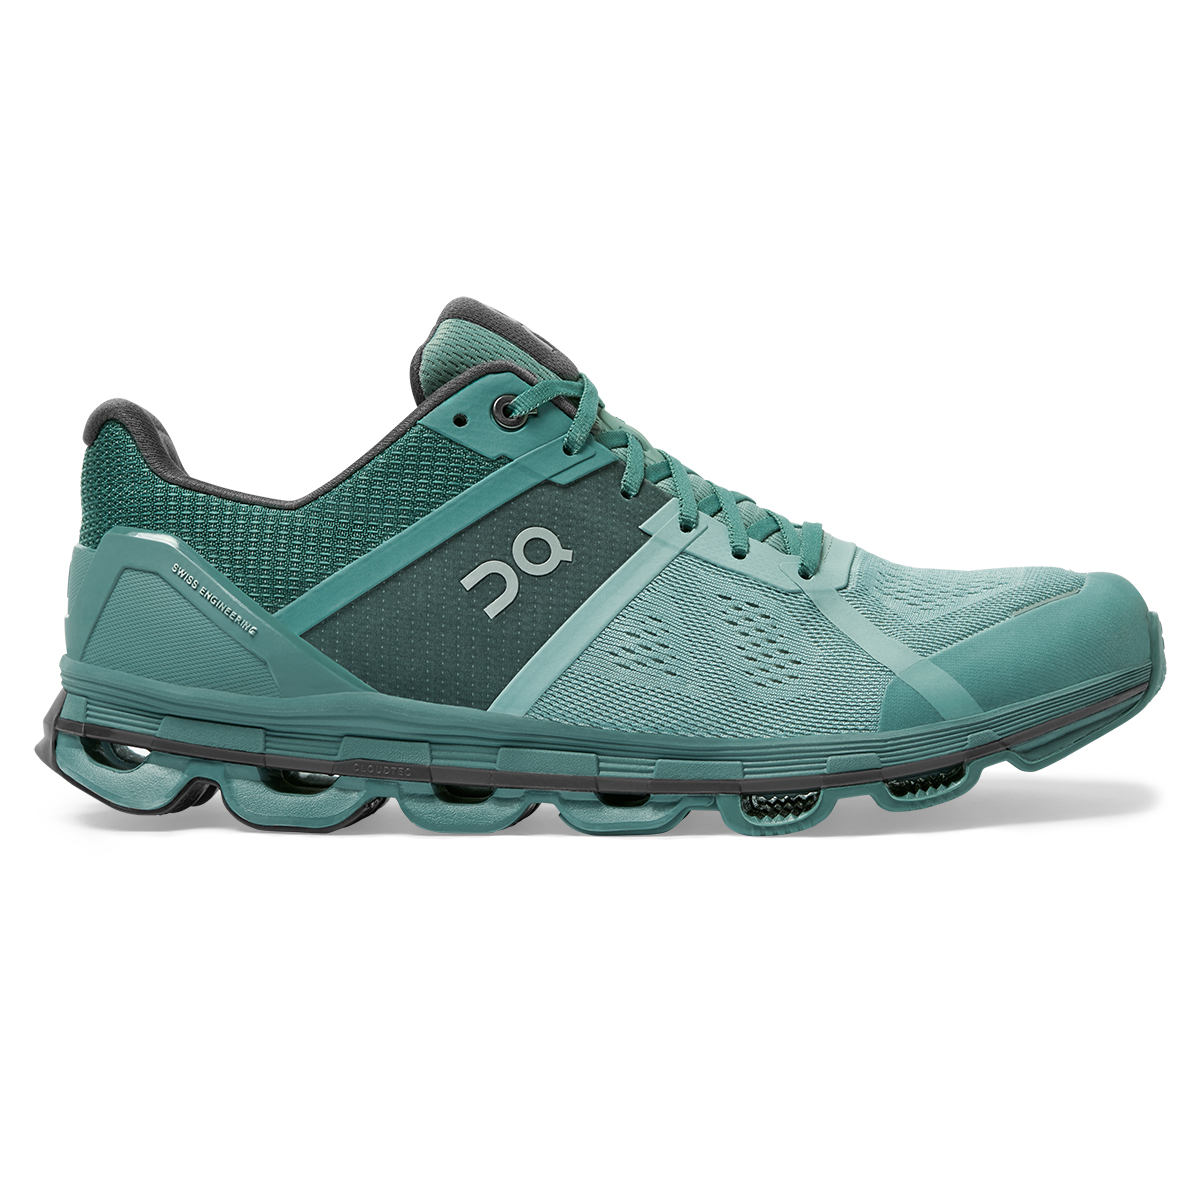 Men's On Cloudace Running Shoe - Color: Sea/Shadow - Size: 7 - Width: Regular, Sea/Shadow, large, image 1